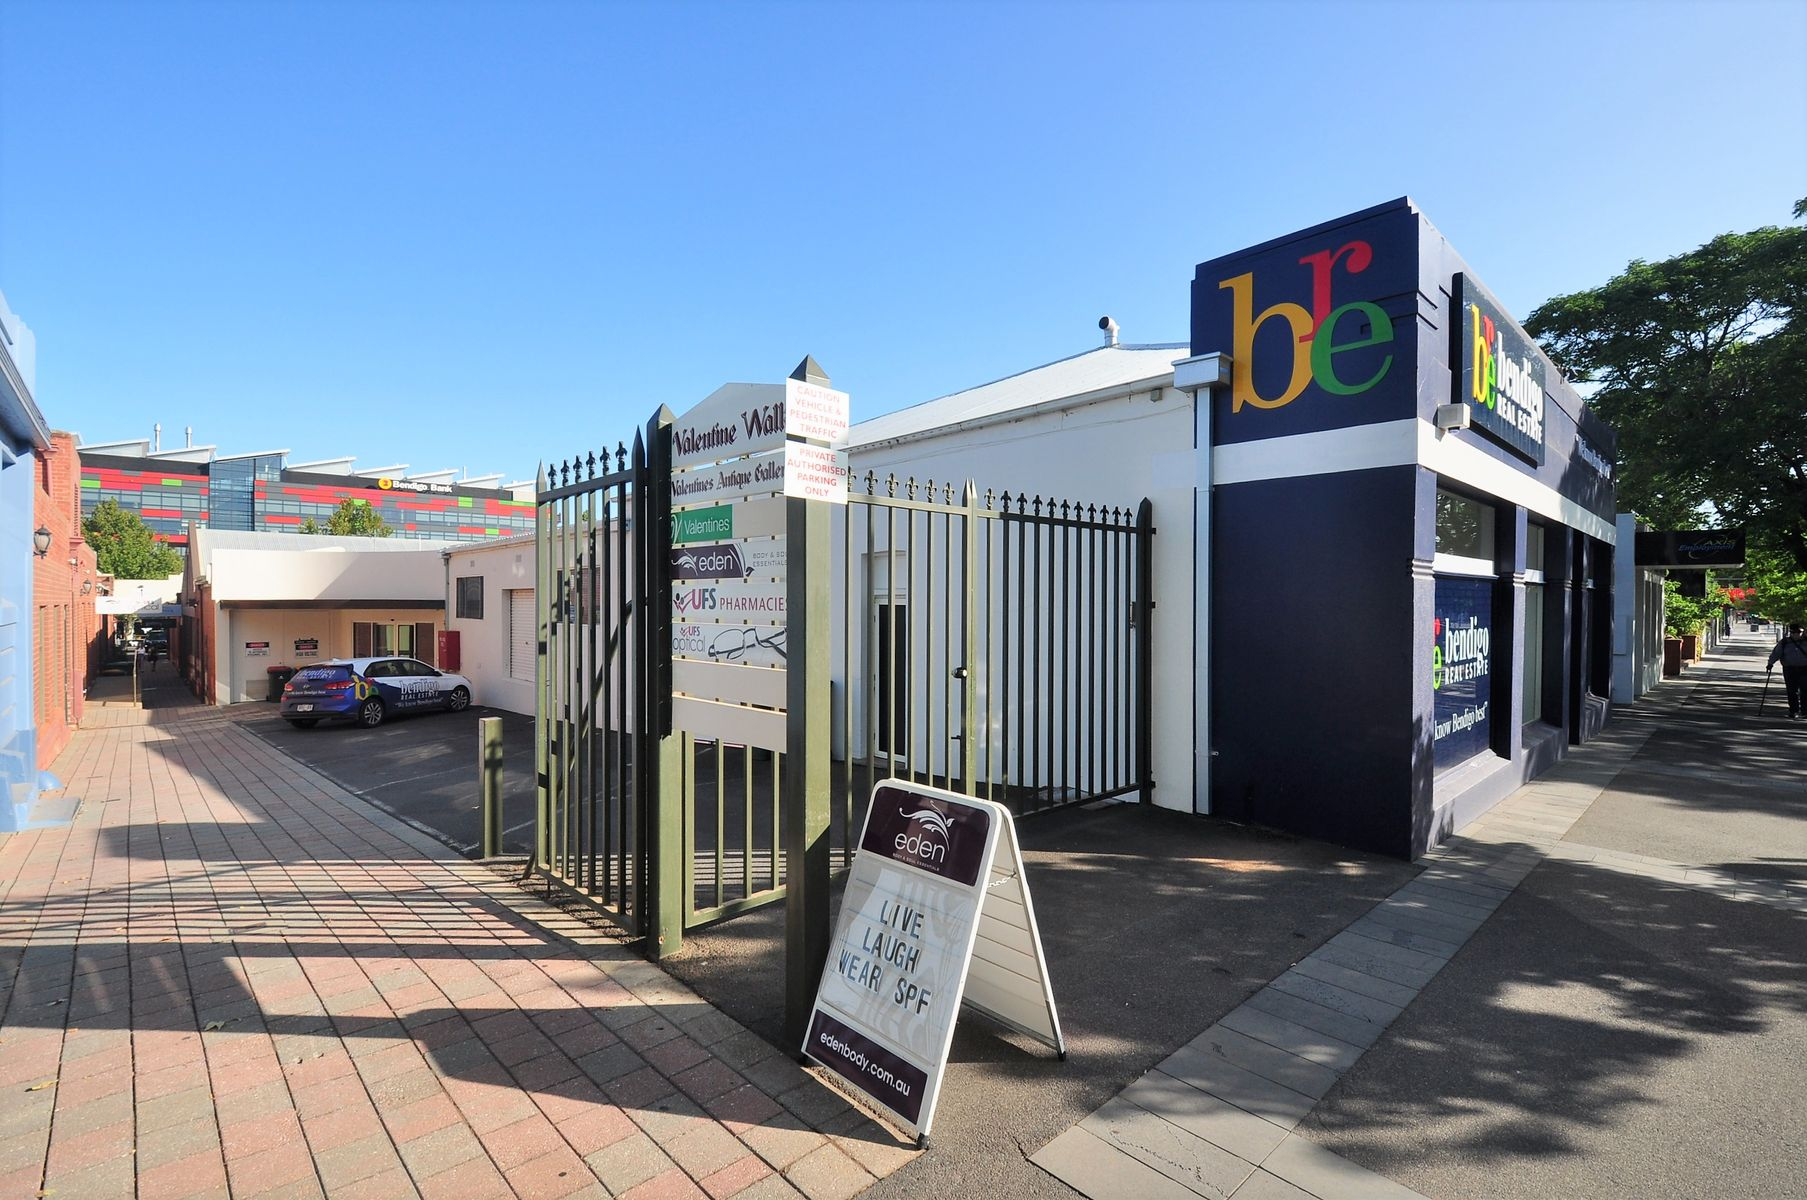 365-379 Hargreaves Street, Bendigo, VIC 3550